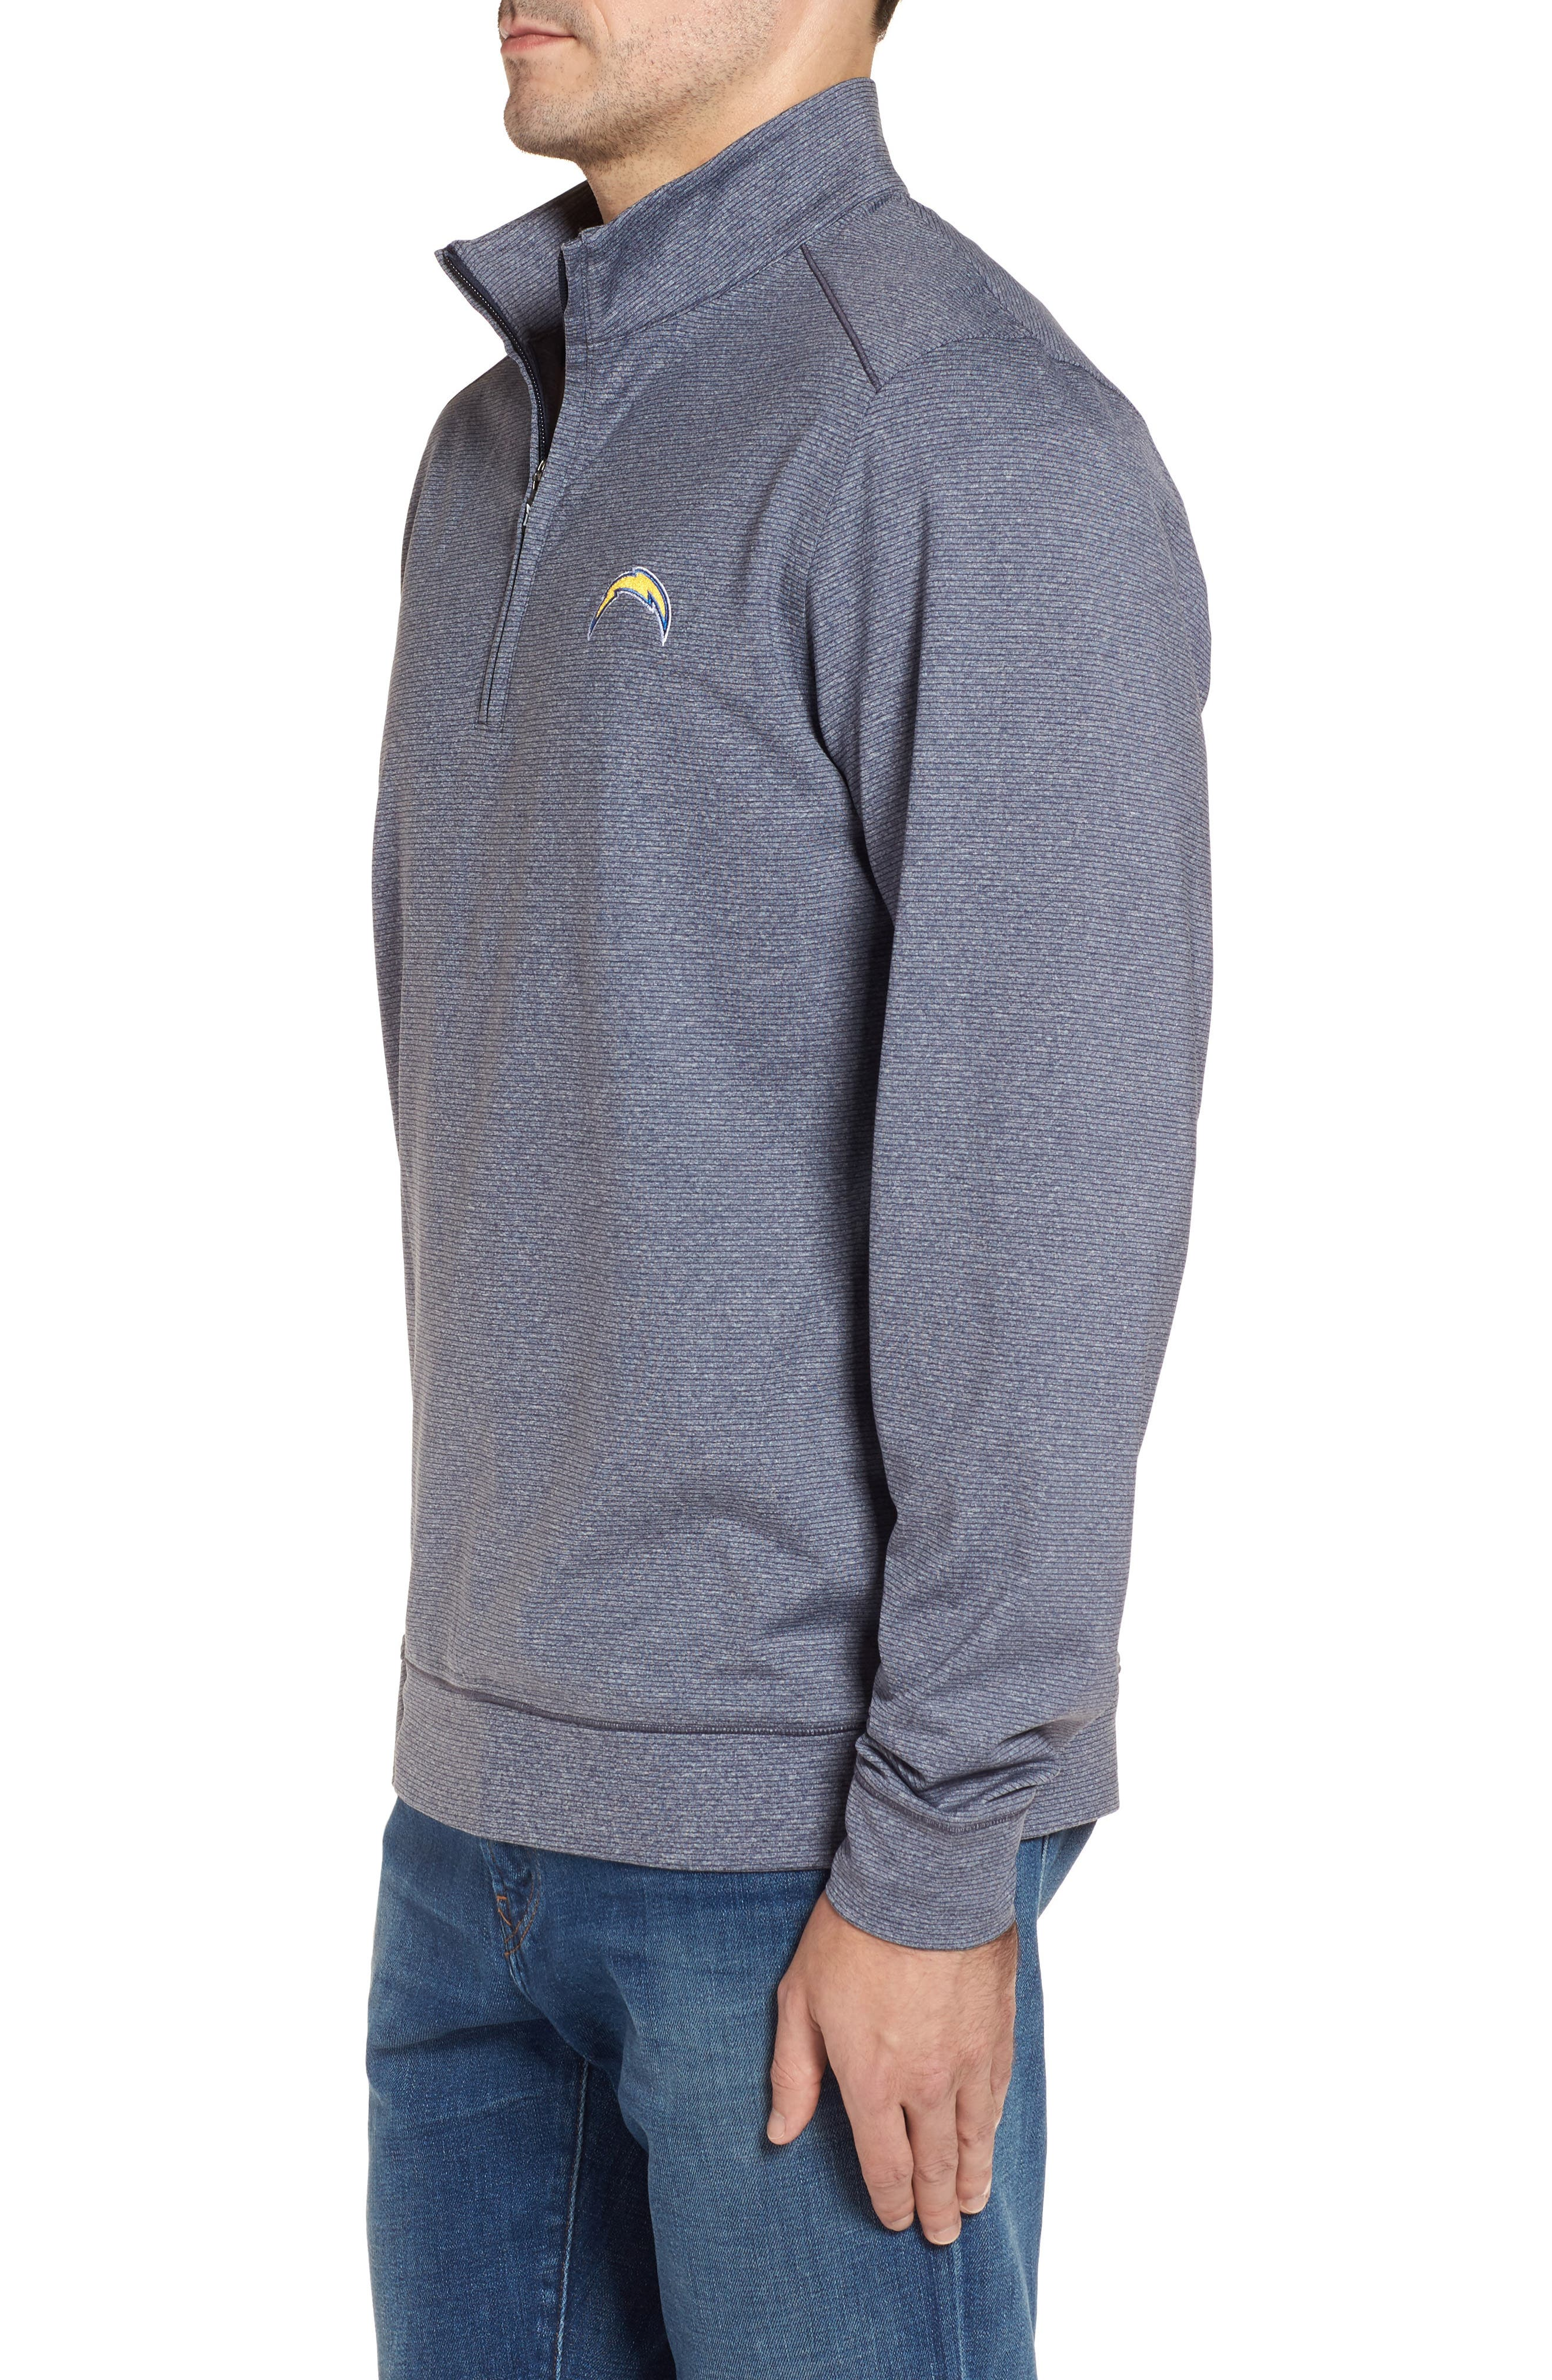 Shoreline - Los Angeles Chargers Half Zip Pullover,                             Alternate thumbnail 3, color,                             976